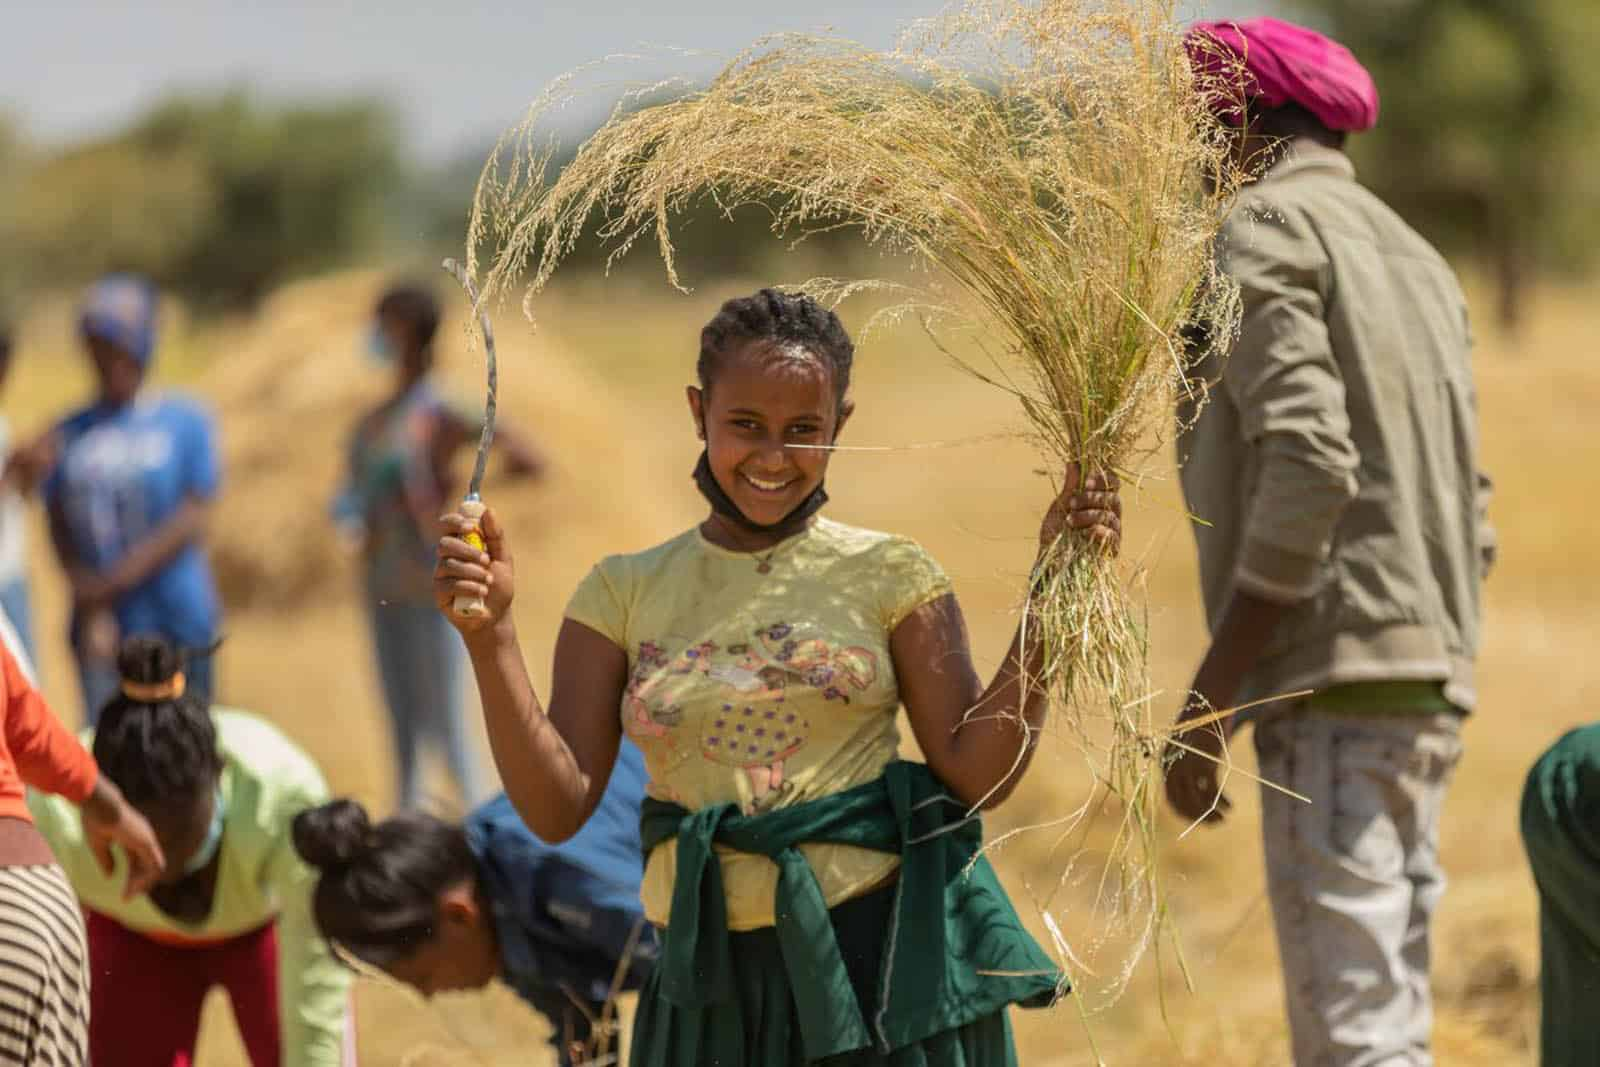 Extraordinary Teens in Ethiopia Help Farmers Save Crops During Locust Crisis